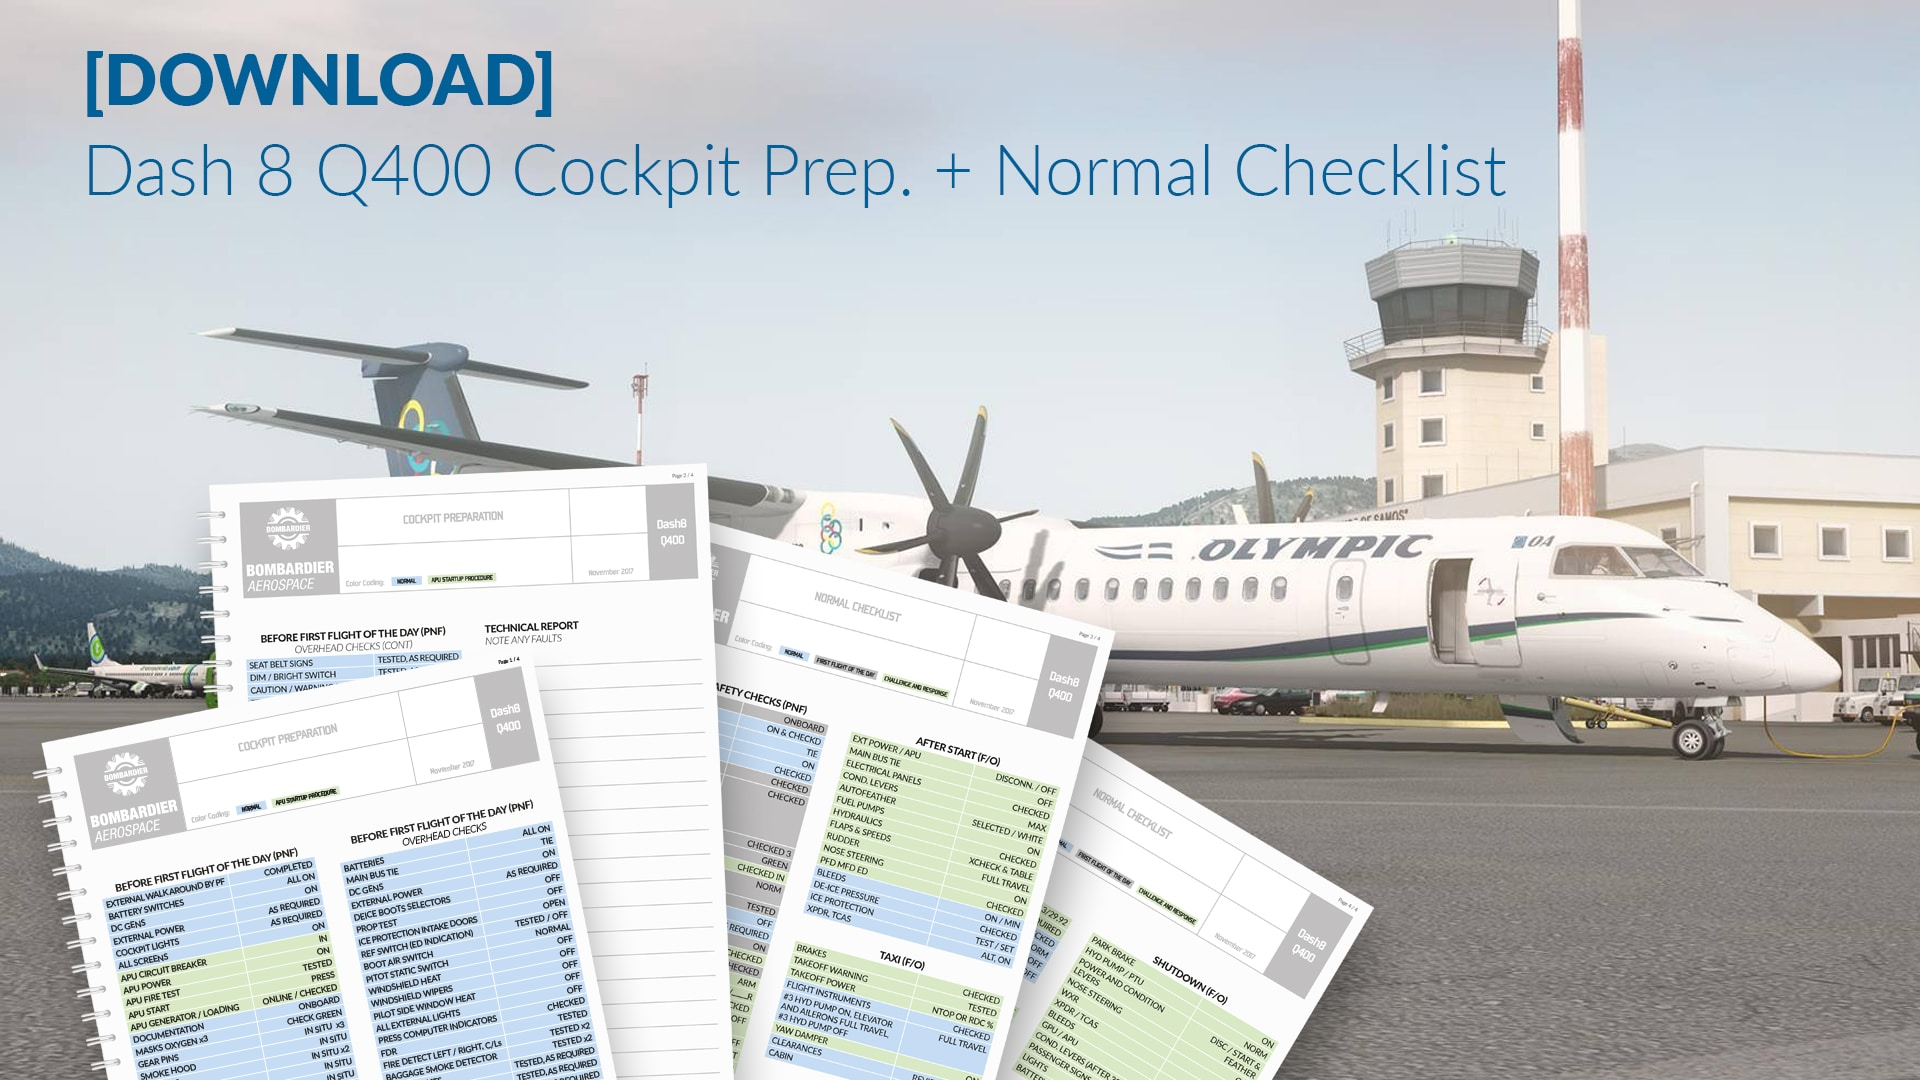 DOWNLOAD] Dash 8 Q400 Cockpit Prep + Normal Checklist - #AvLads com